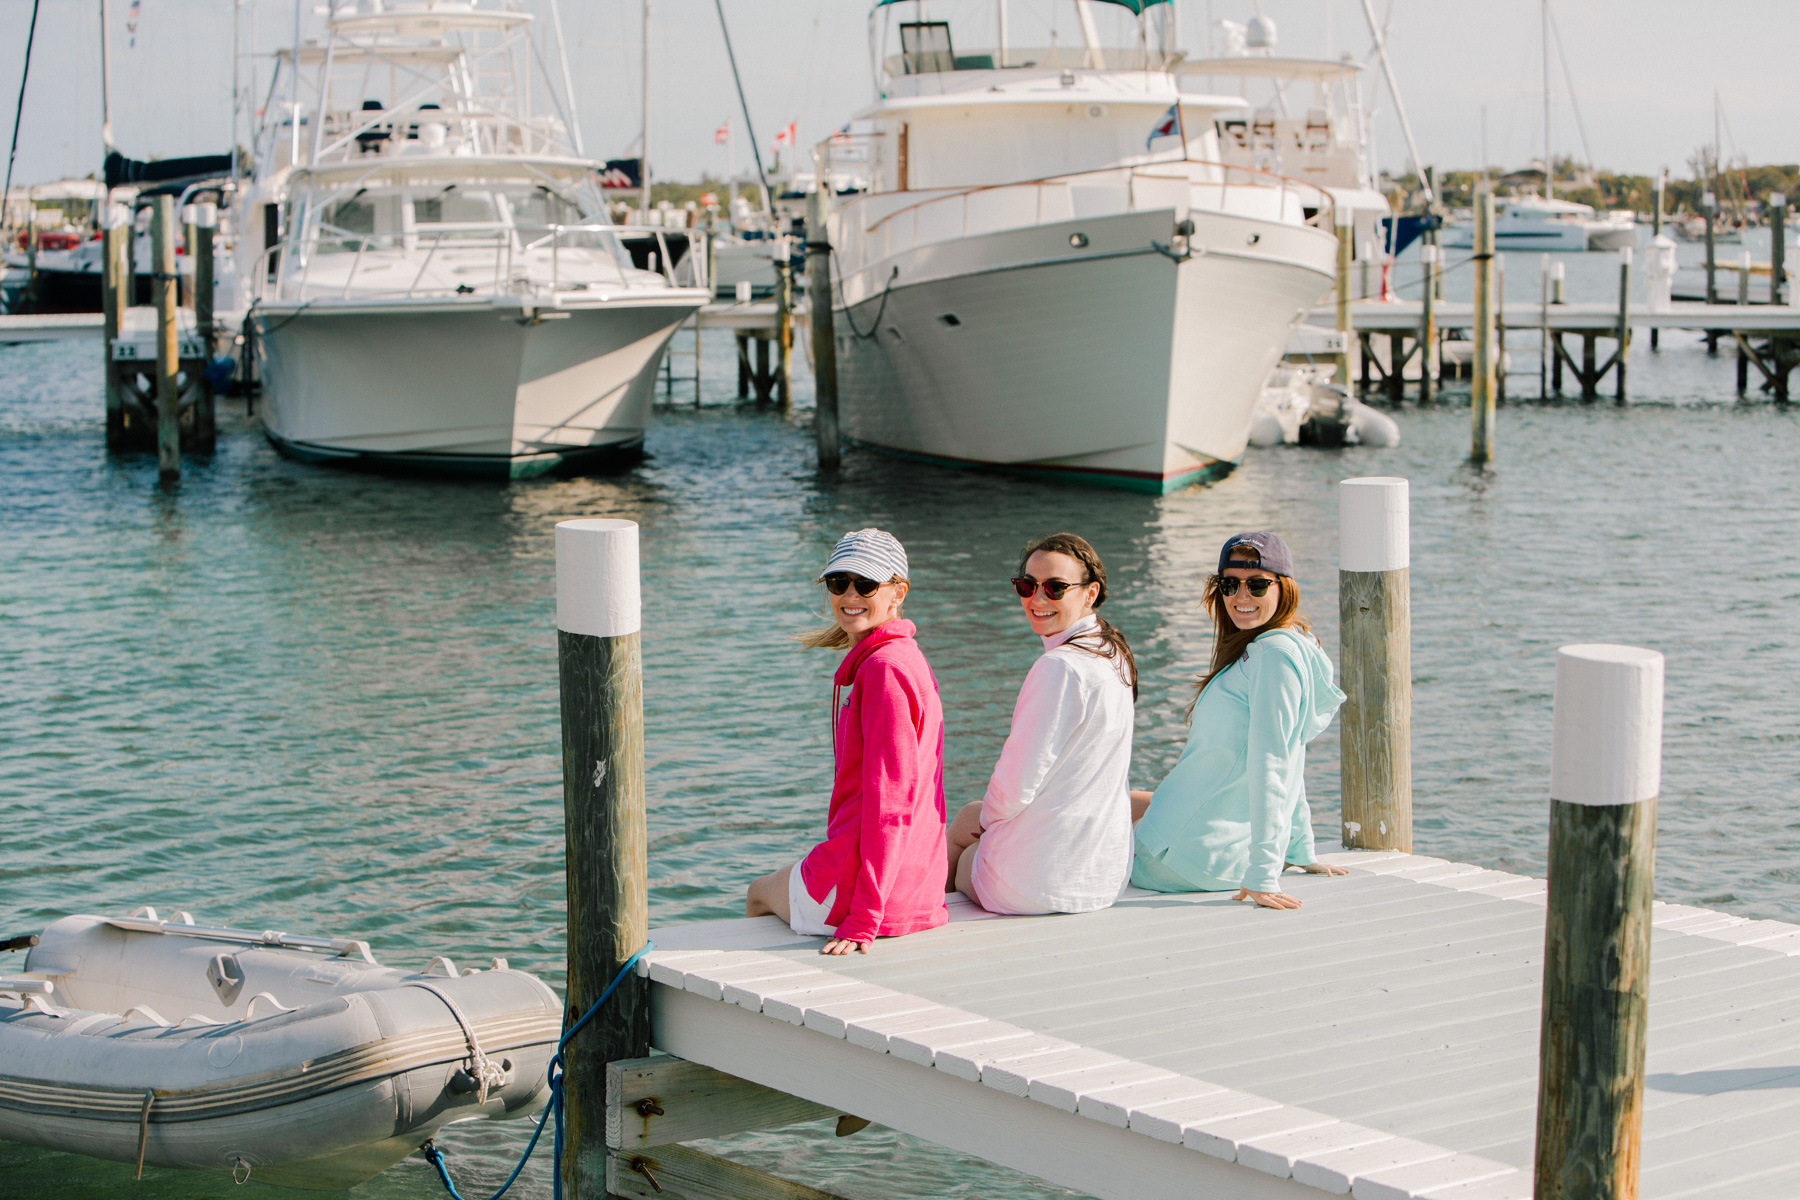 Kelly and her friends  - Vineyard Vines Shep Shirts - Kelly in the City